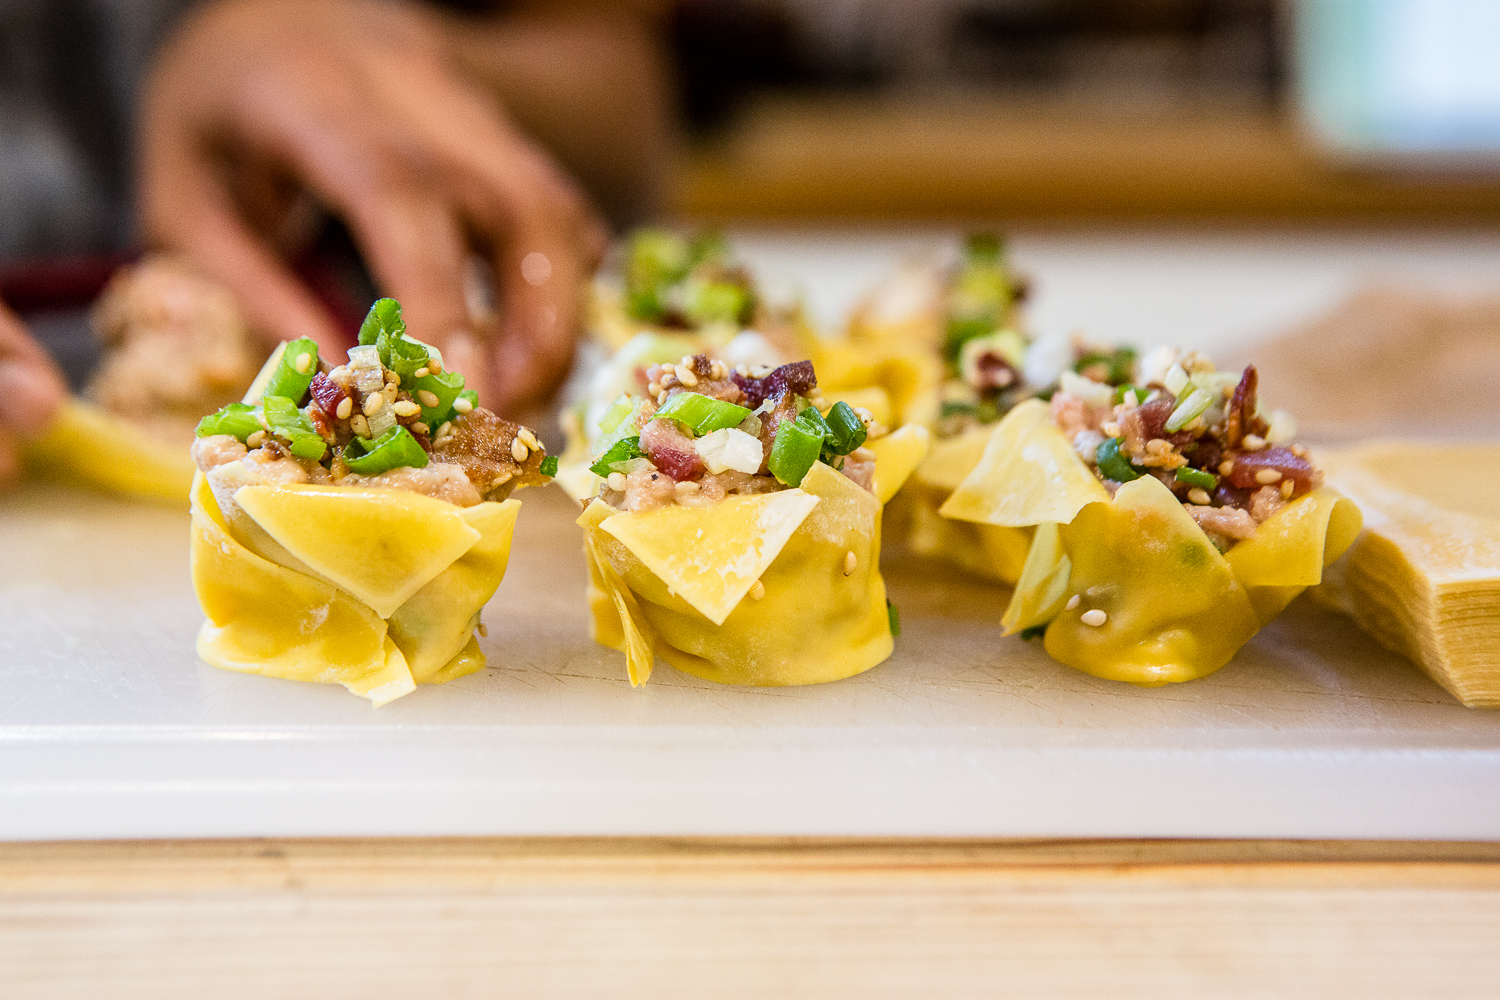 Jenn de la Vega's Steamed Shumai with a Crunchy Sesame Bacon Topping